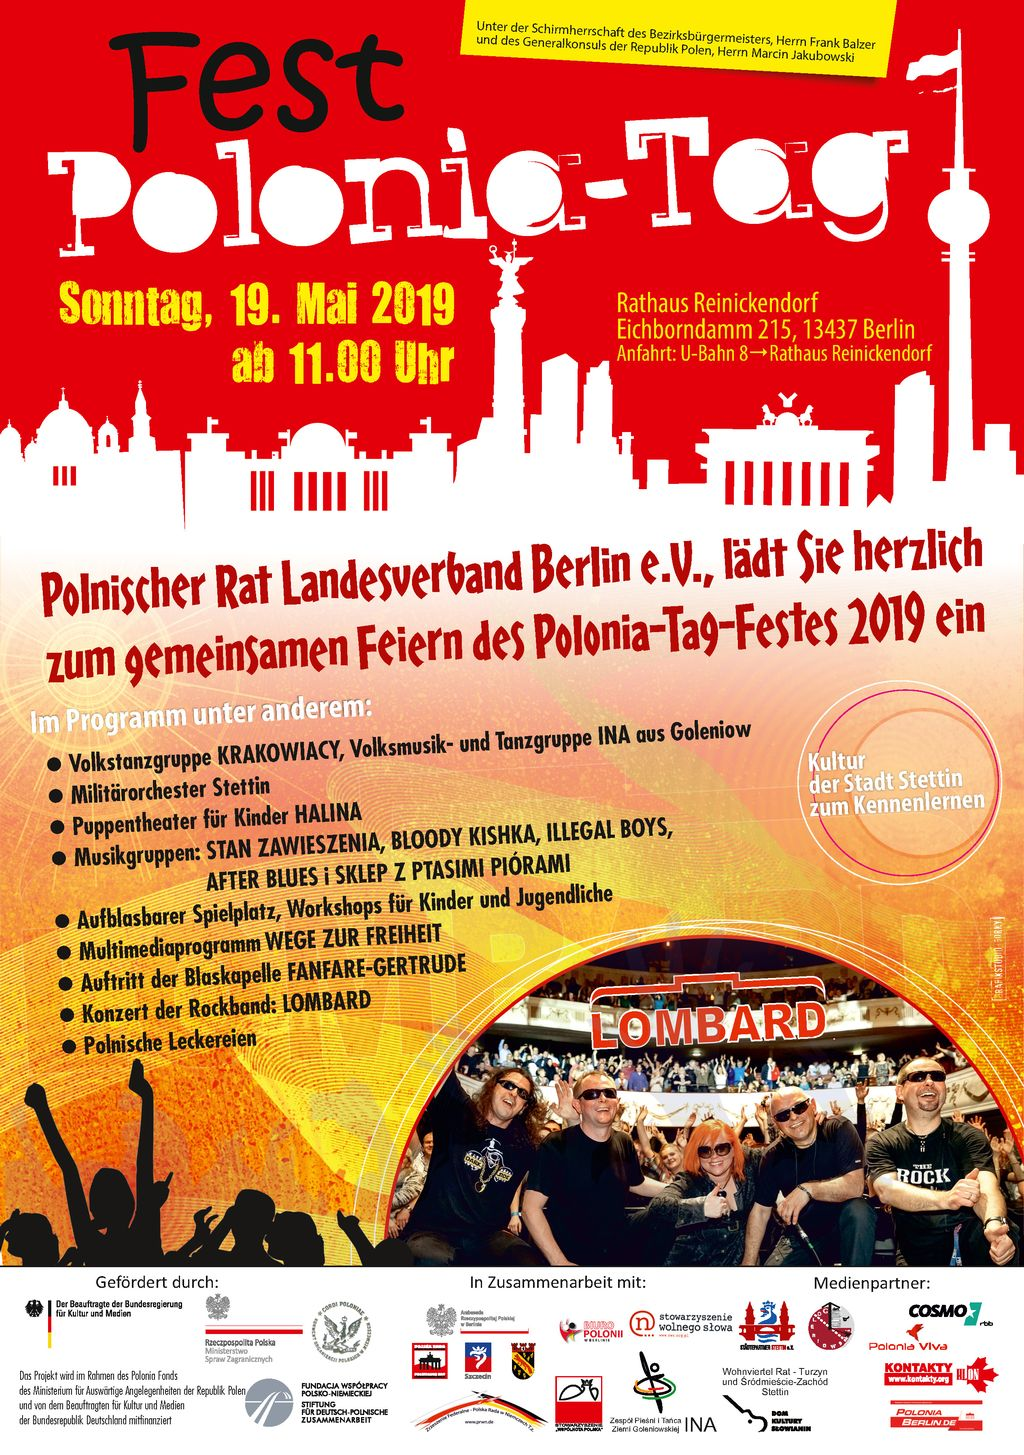 2019 Fest Polonia-Tag in Berlin